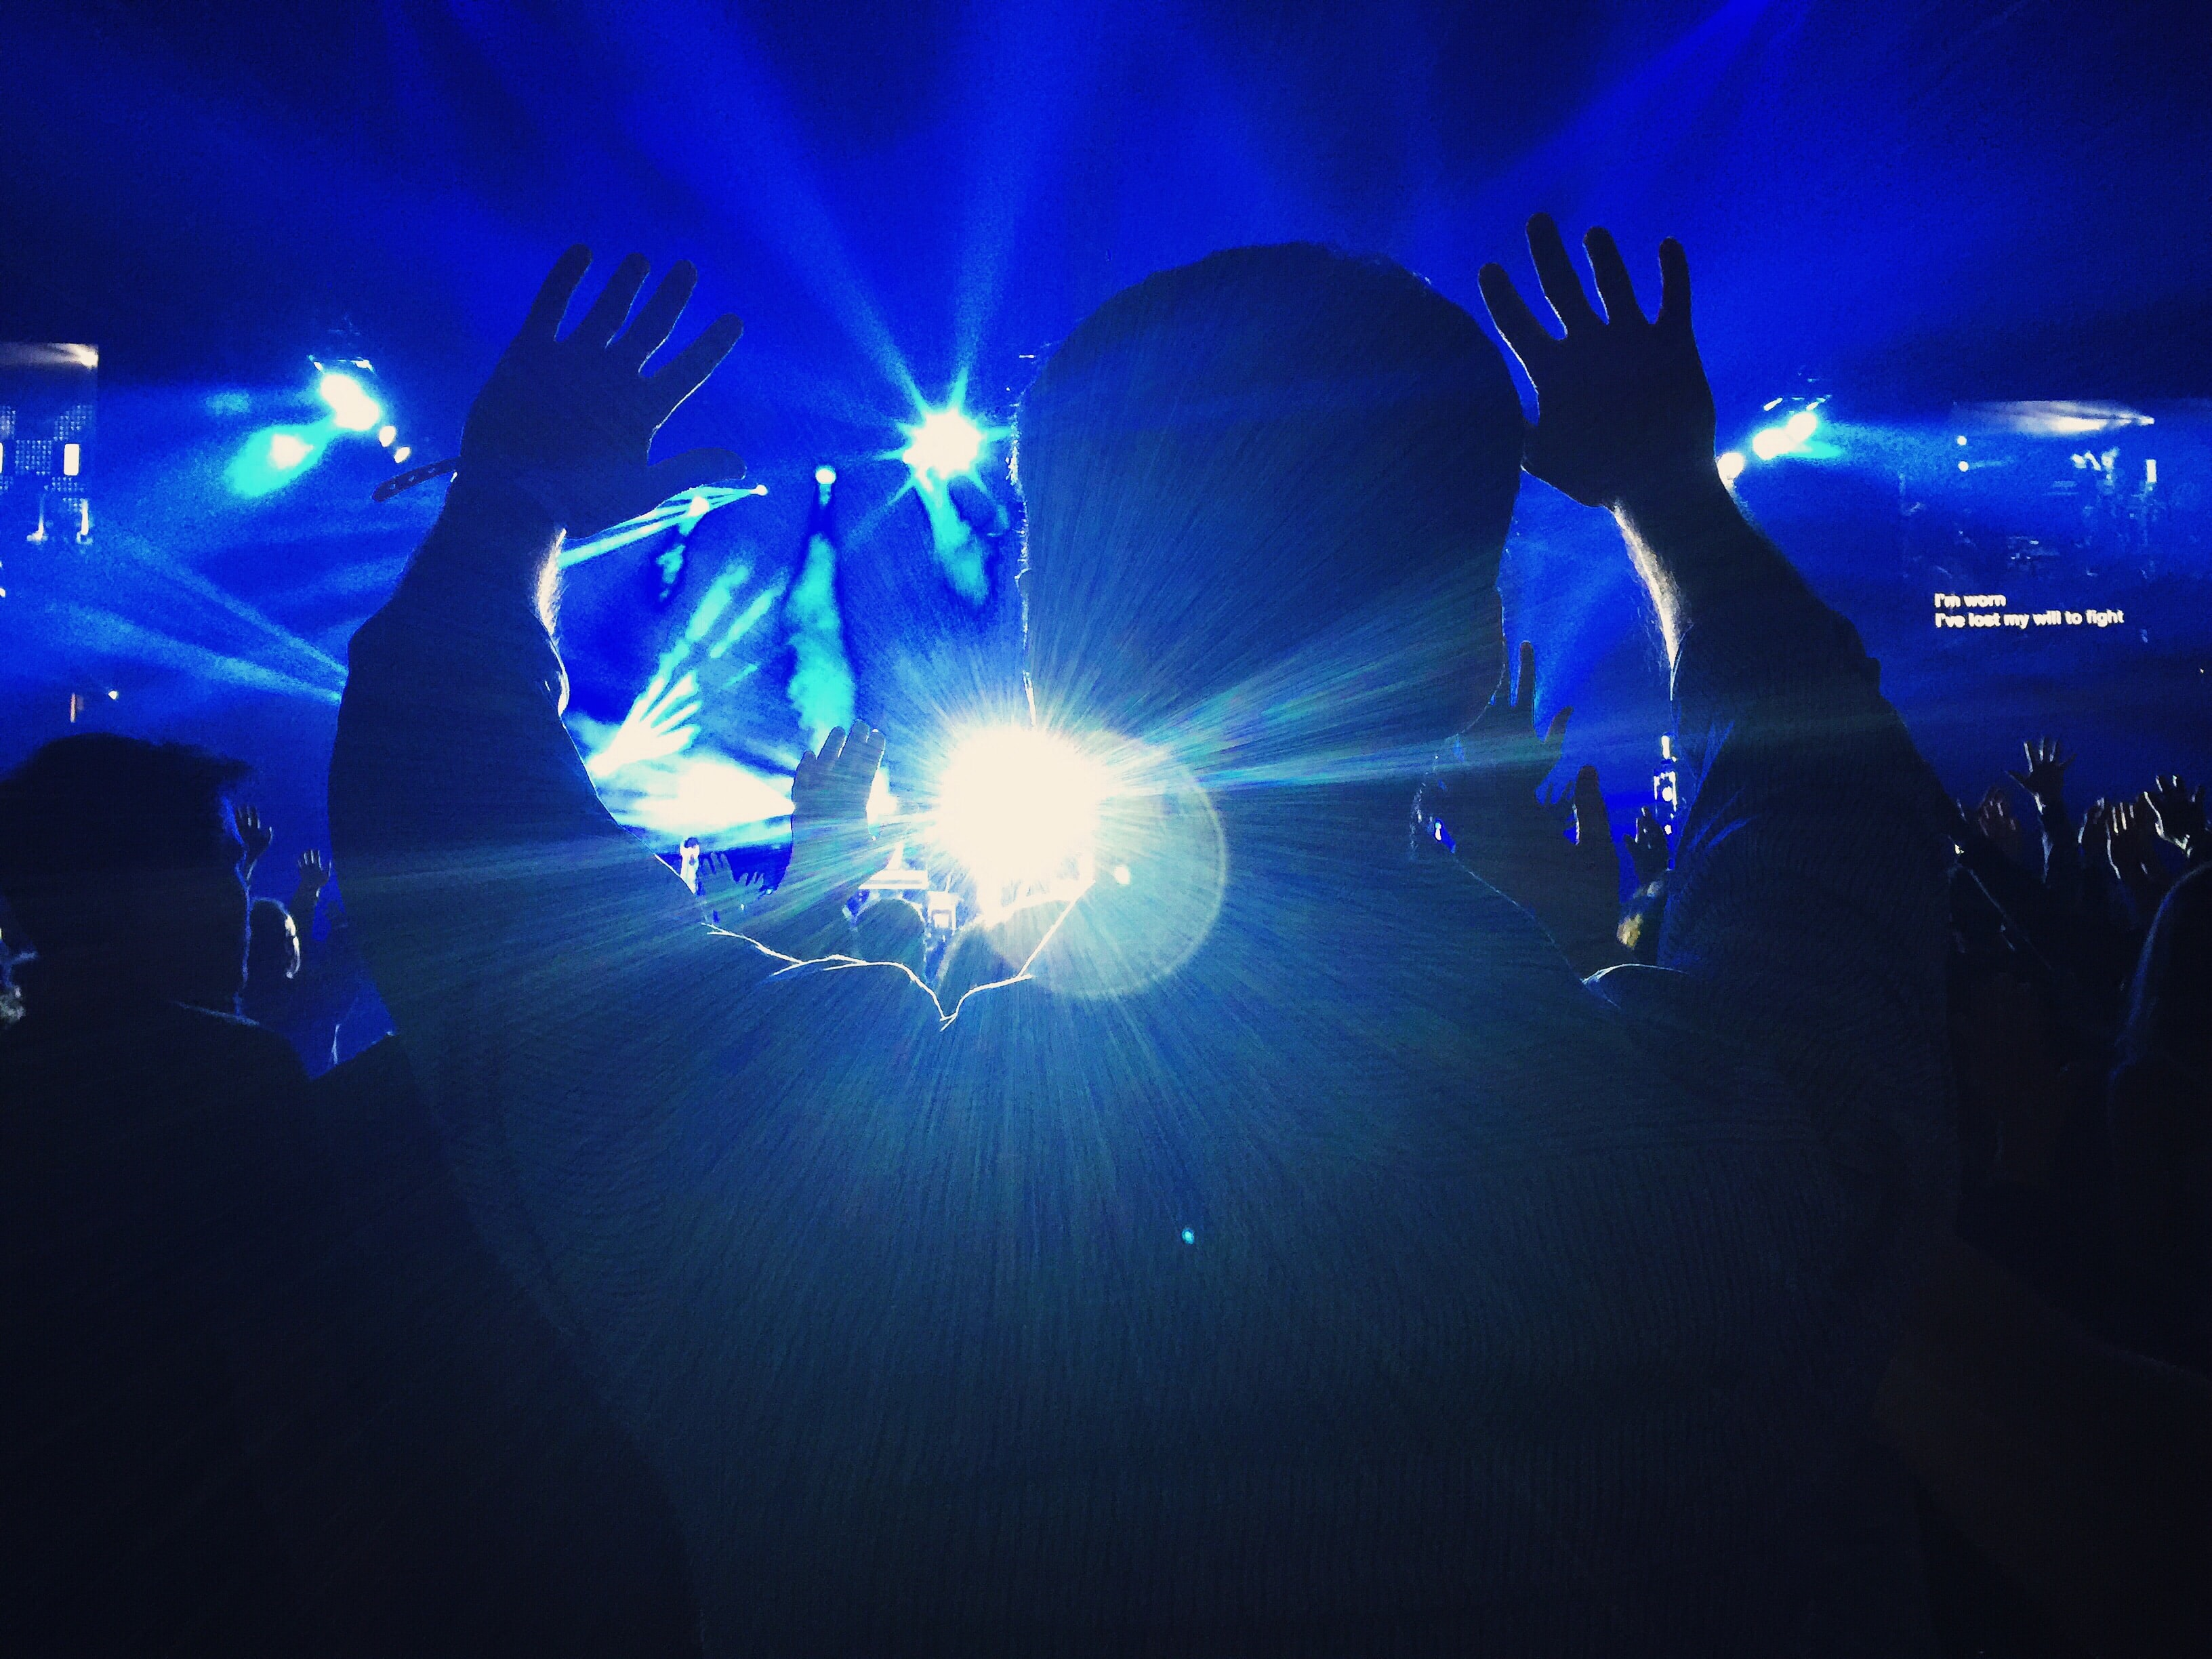 silhouette of a person raising hands towards the stage